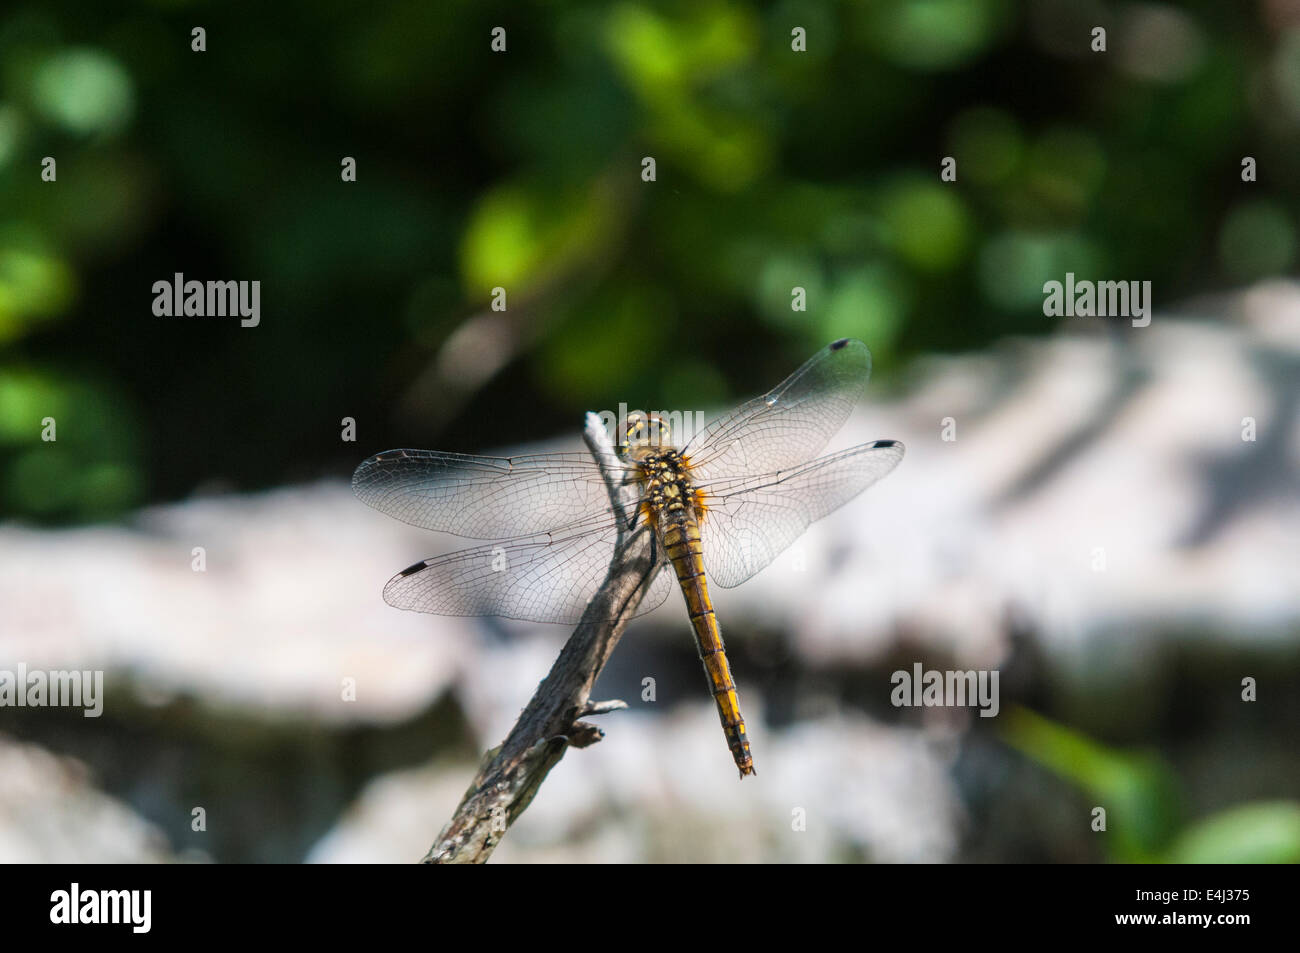 An female Black Darter, Sympetrum danae at rest on a twig. Stock Photo